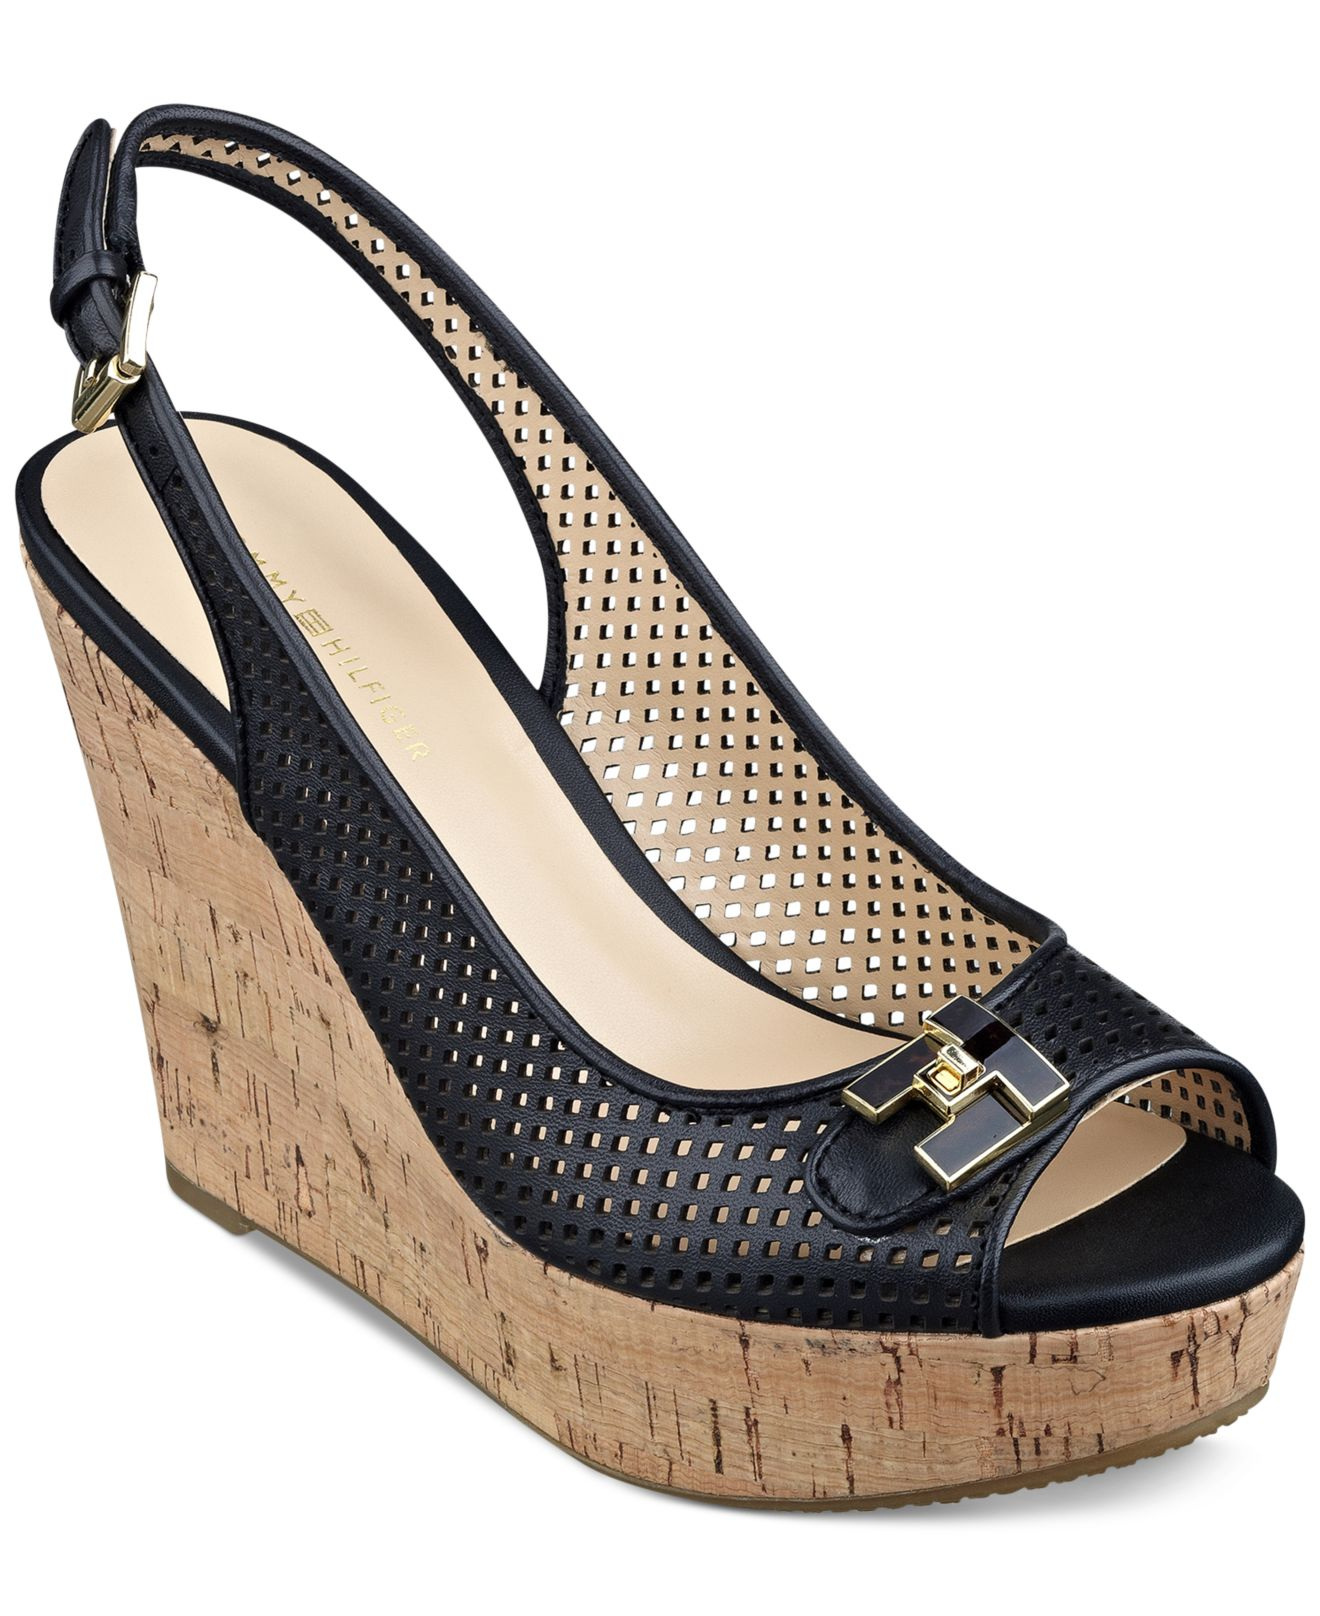 Brilliant  Wedge Platform Sandal Coffee Are The Perfect Way To Liven Up Your